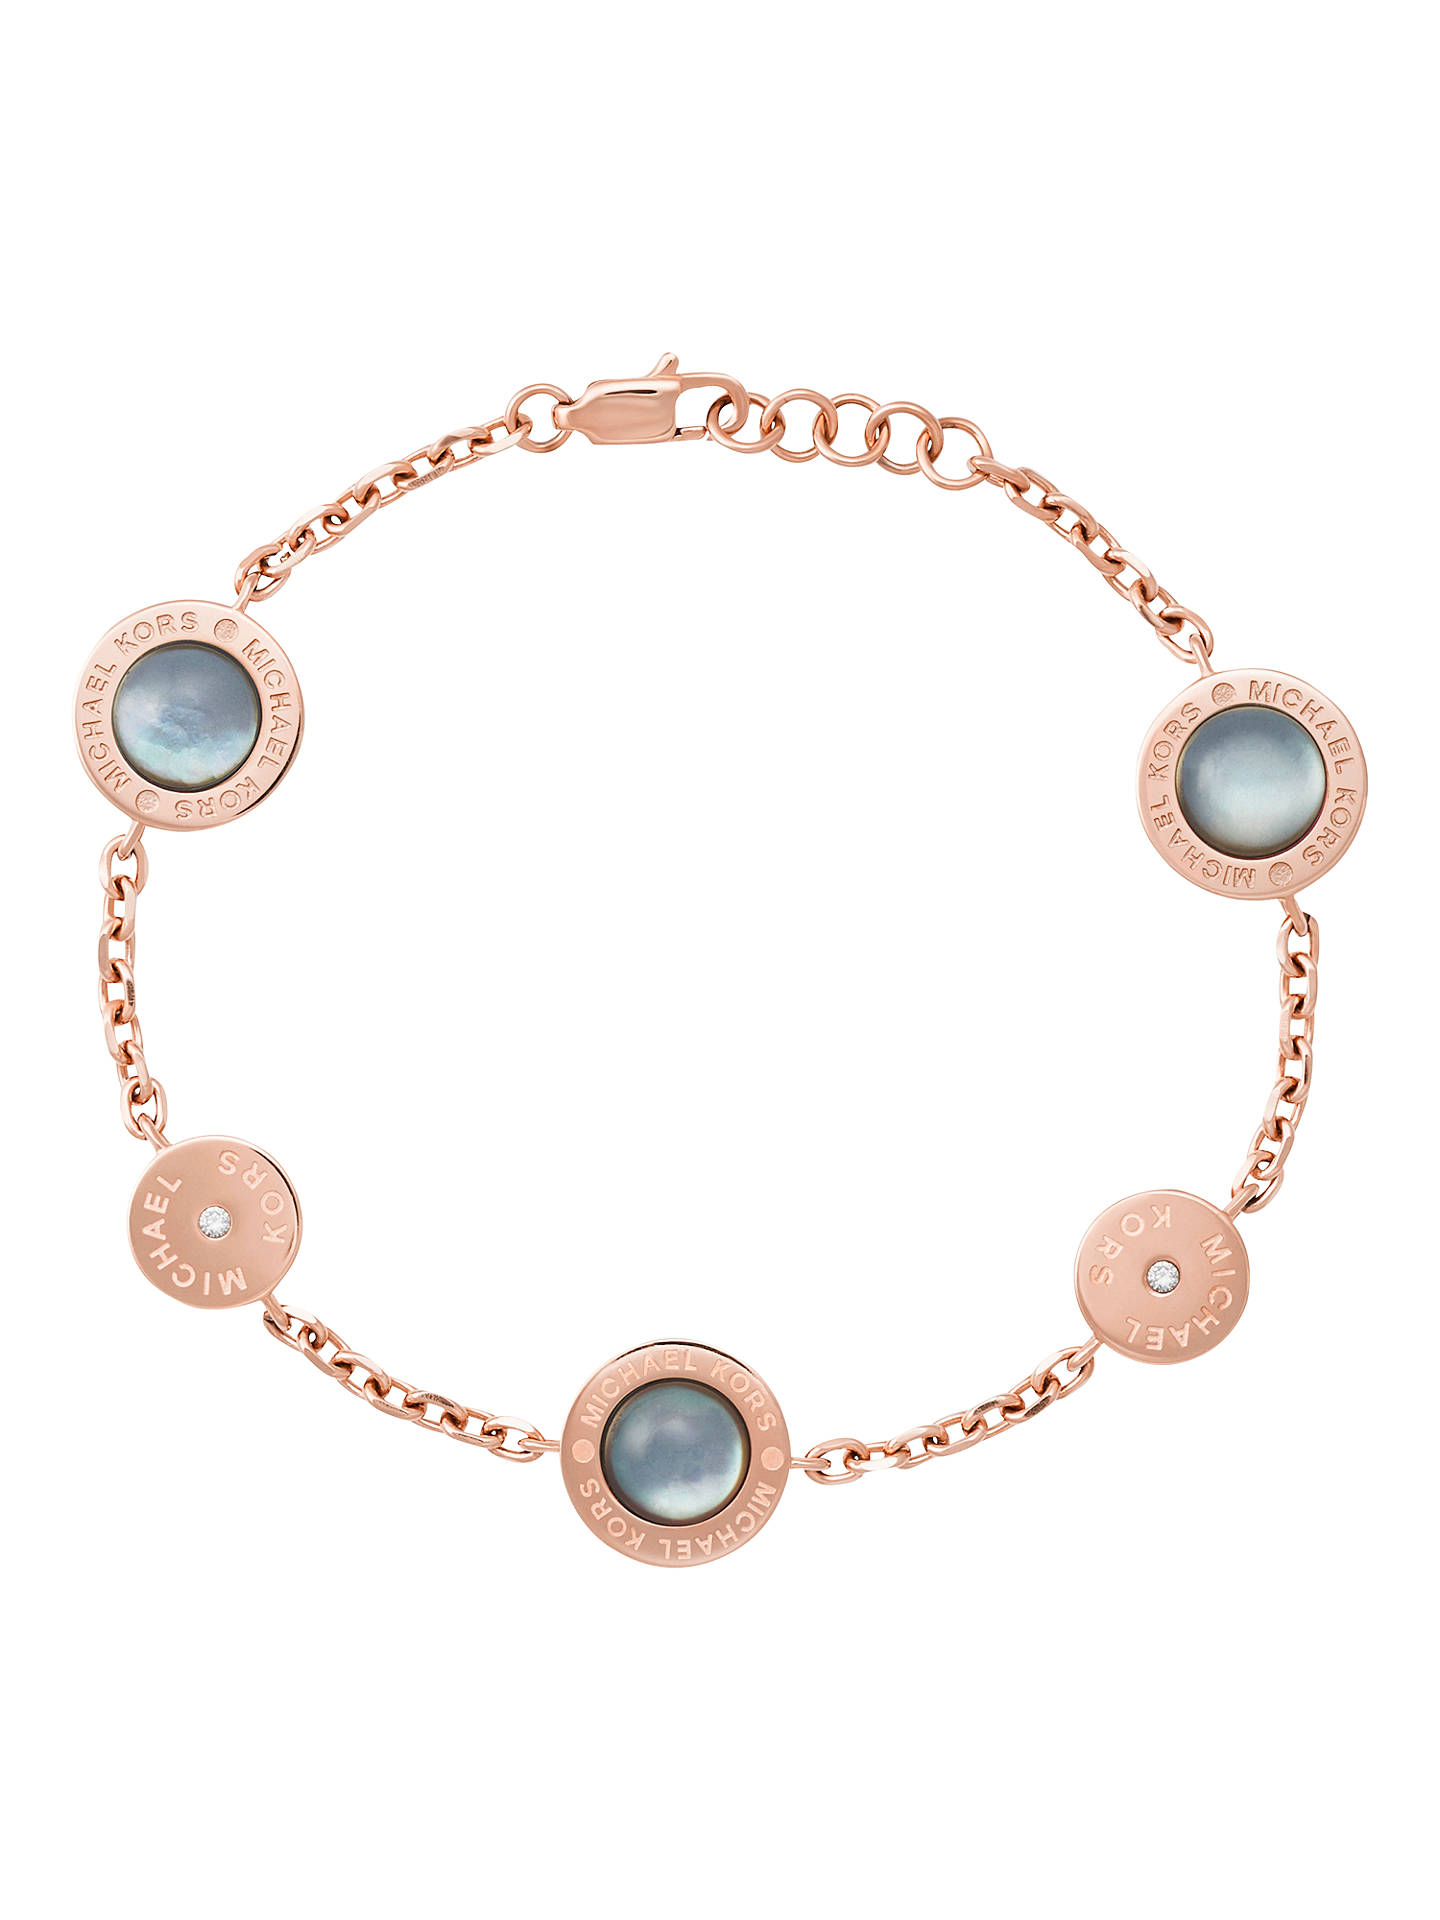 Michael Kors Mother Of Pearl Charm Chain Bracelet Rose Gold Grey Online At Johnlewis